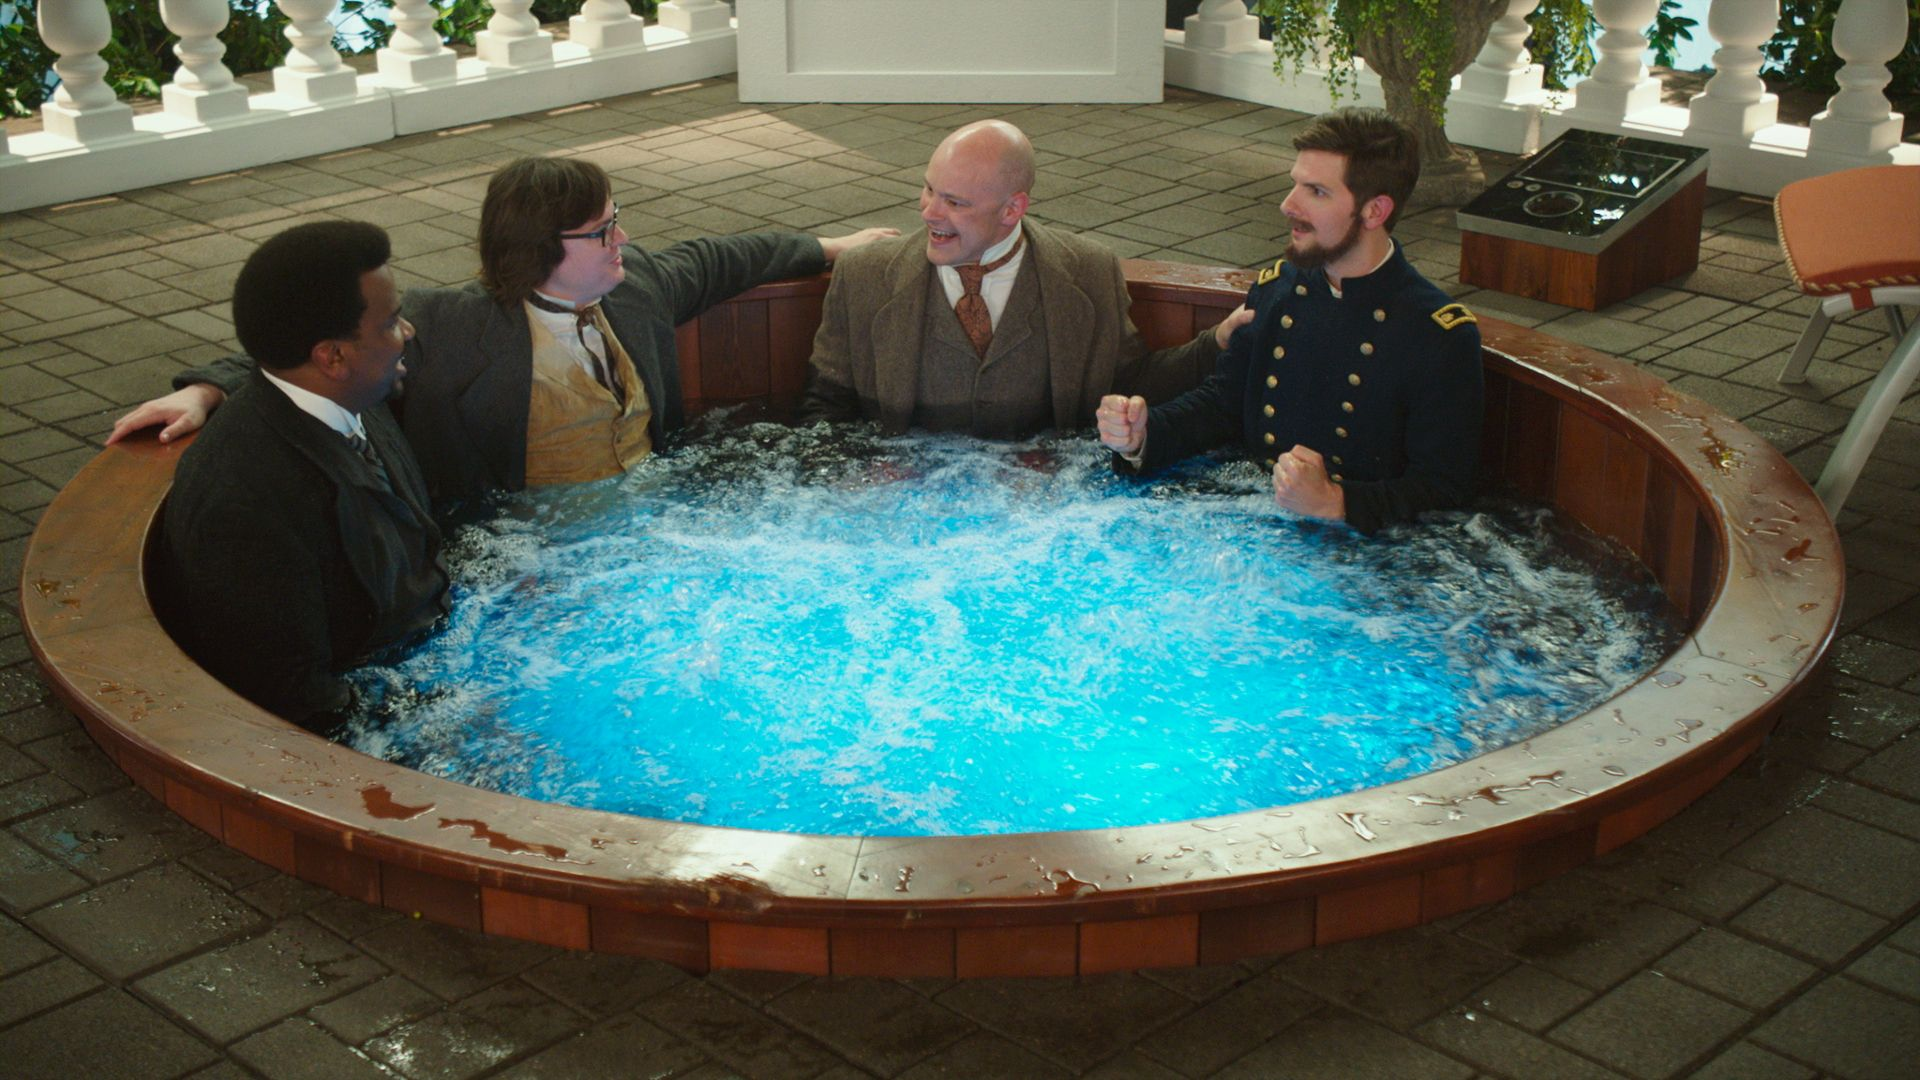 New hot tub time machine 2 images go to the year 2025 - Jacuzzi whirlpool ...